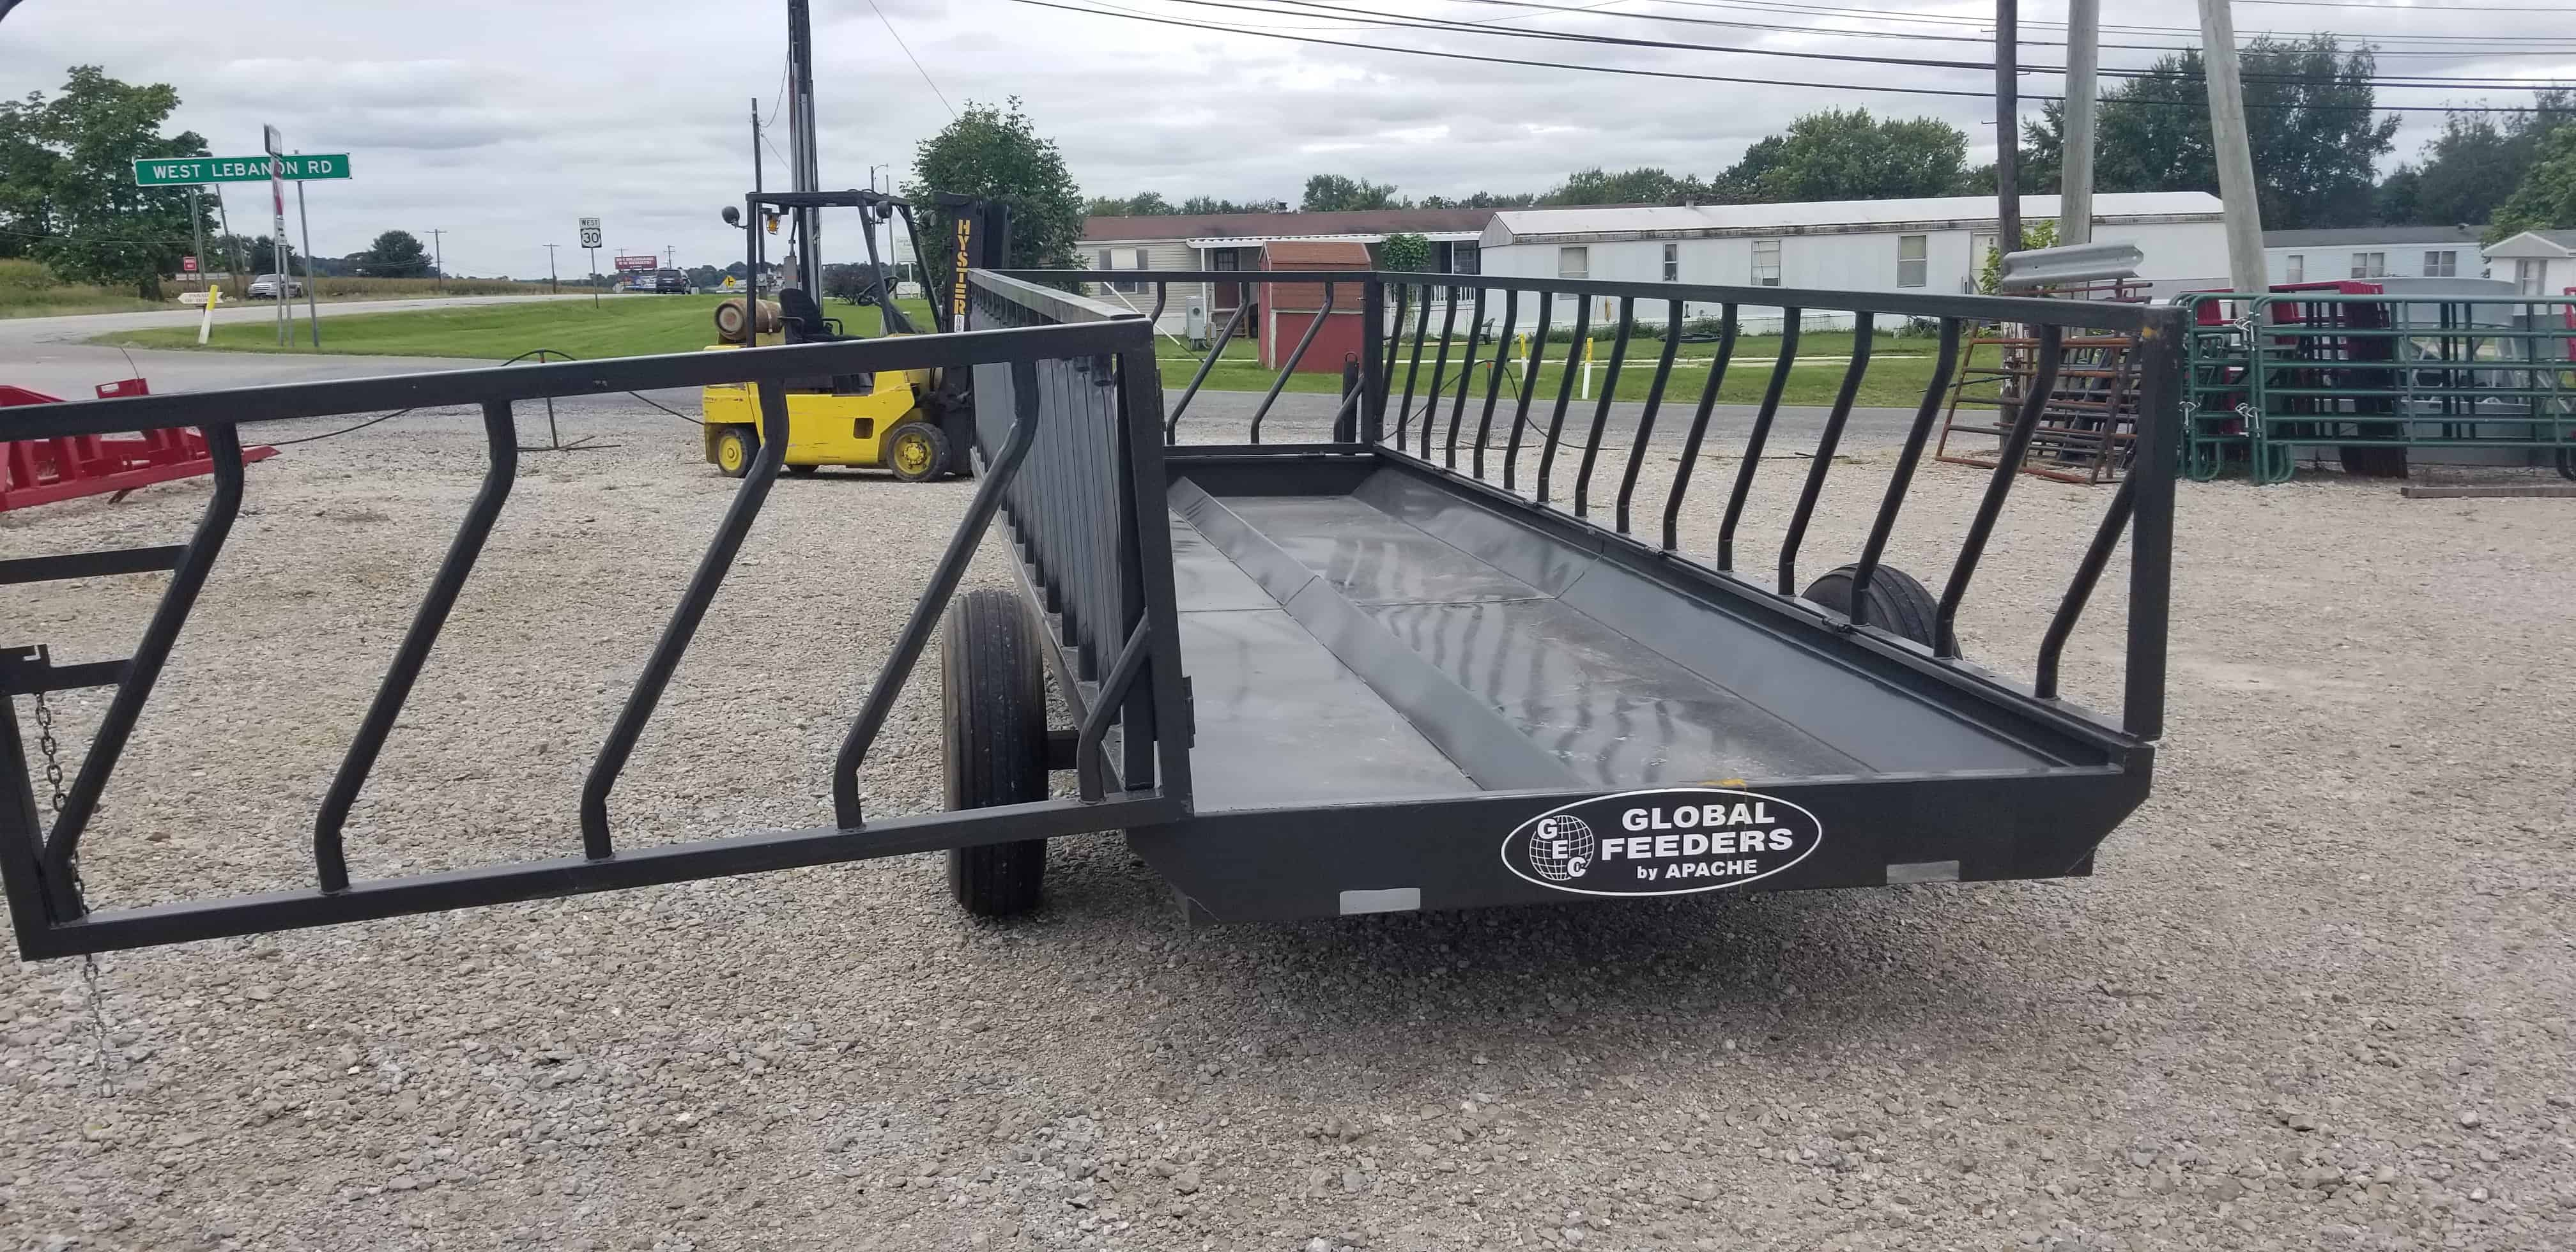 5th Wheel Trailers >> 20' Global Feeder Wagon | Amos Livestock Equipment, LLC